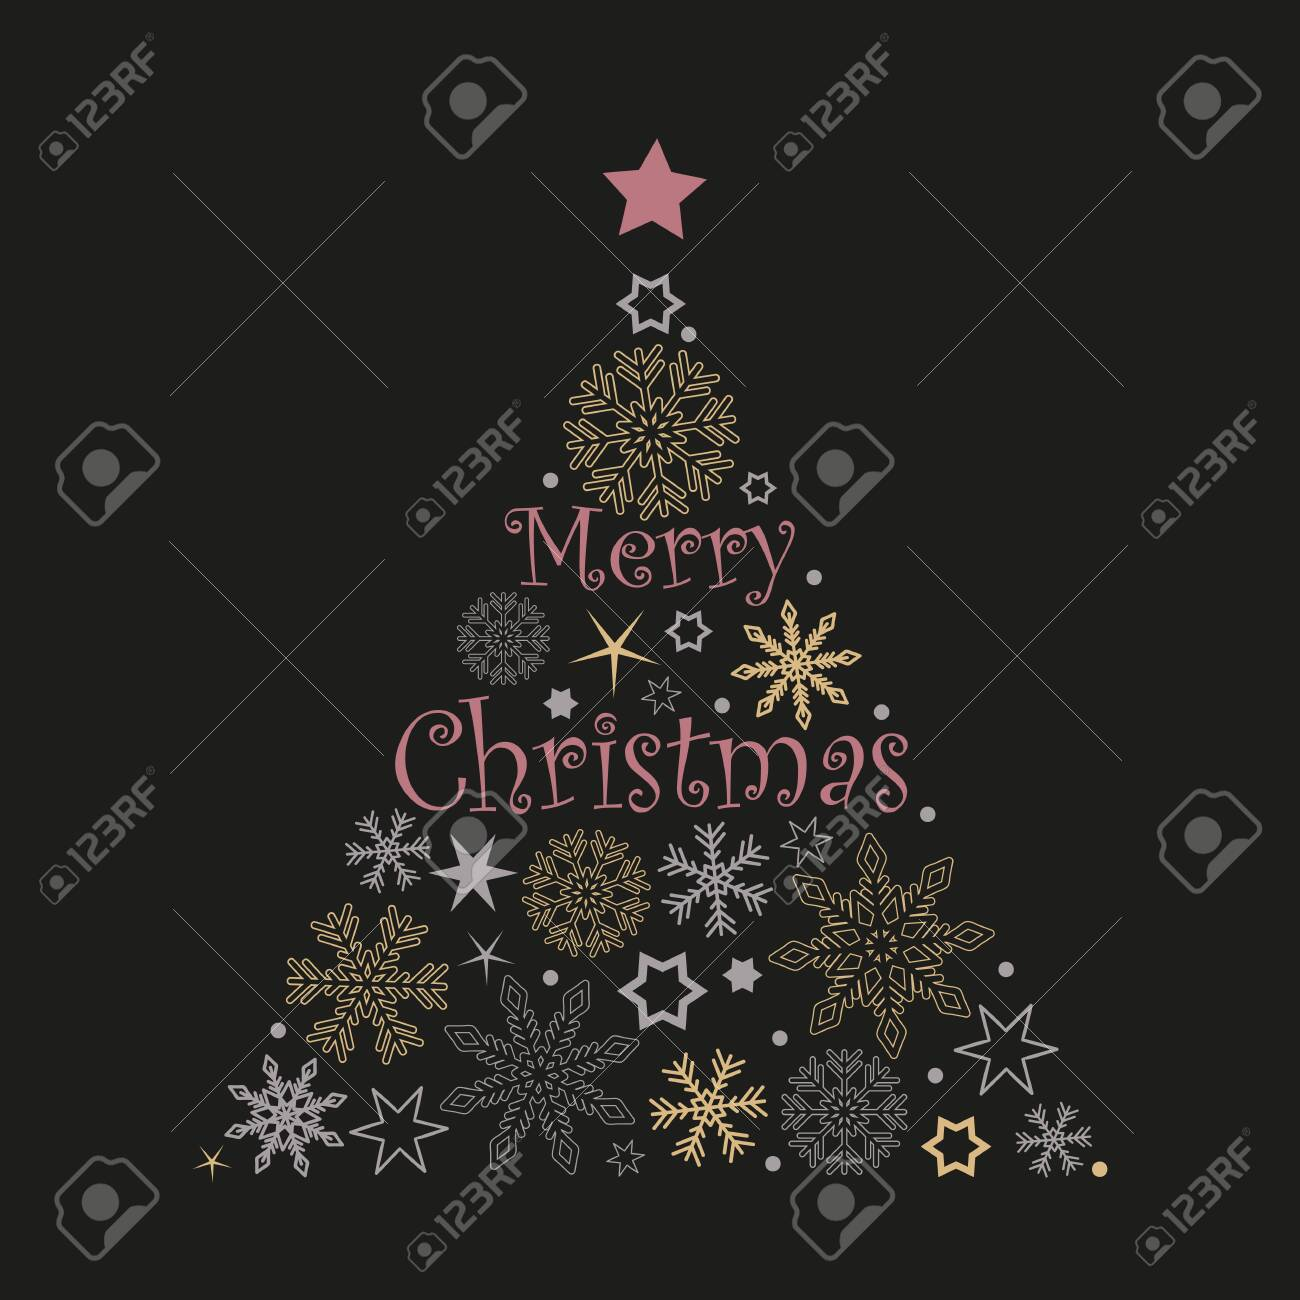 christmas tree snowflakes and stars in red and grey colors on white background vector illustration EPS10 - 131311783